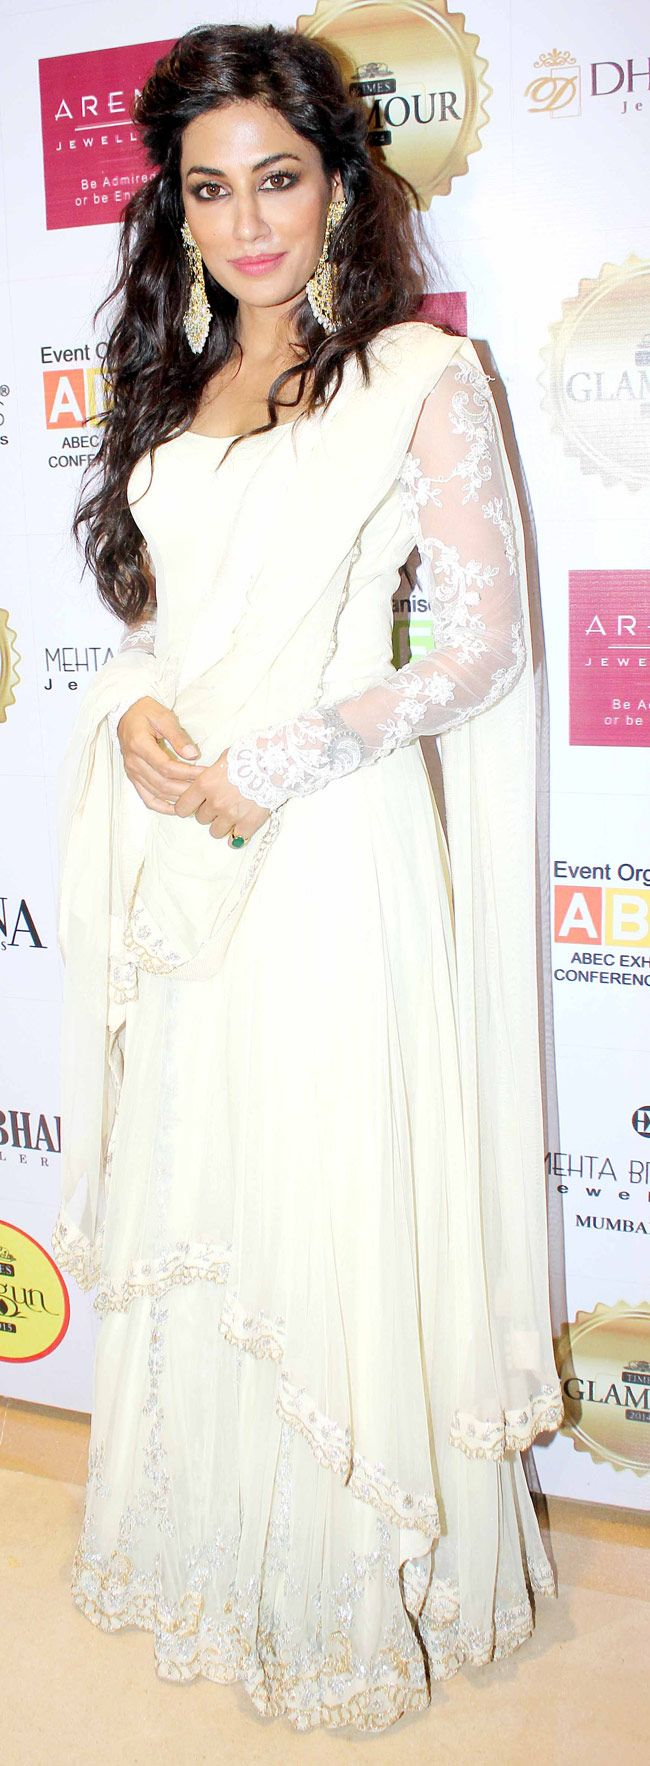 Chitrangada Singh at a do in a stunning floor-length Indian ensemble. #Style #Bollywood #Fashion #Beauty